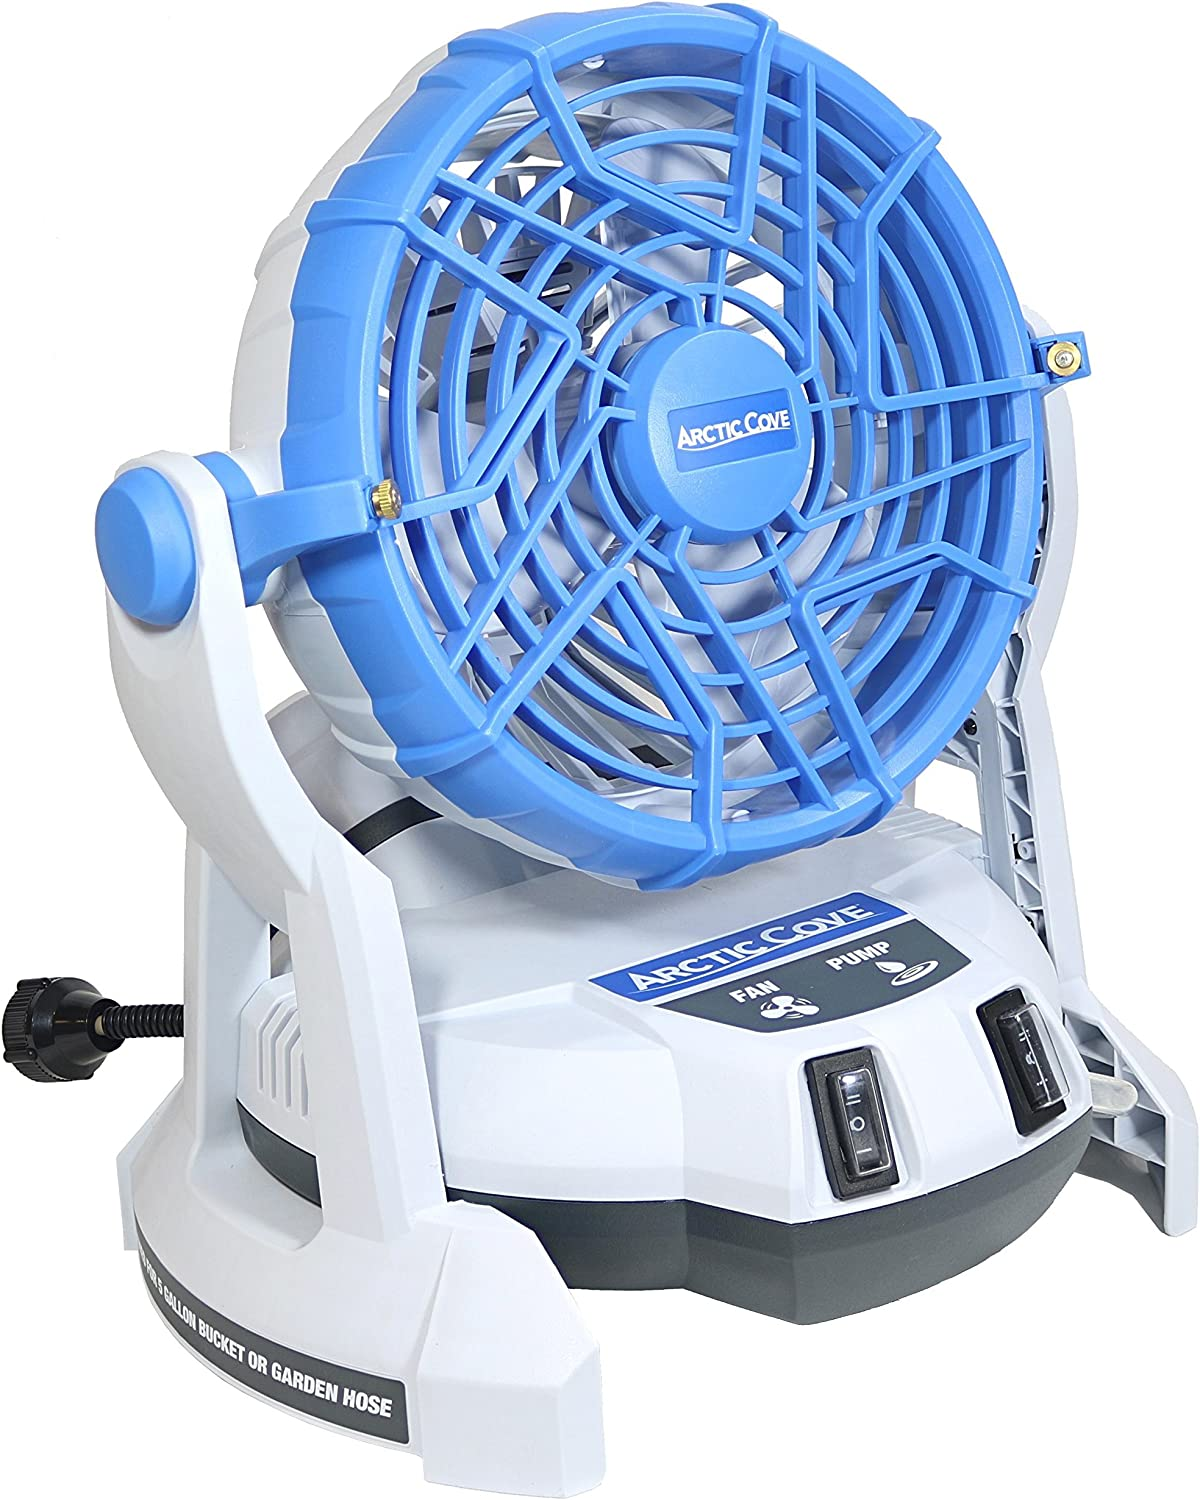 Arctic Cove MBF0181 18V Lithium Ion Powered Cooling Bucket Top Variable Speed Fan and Water Mister